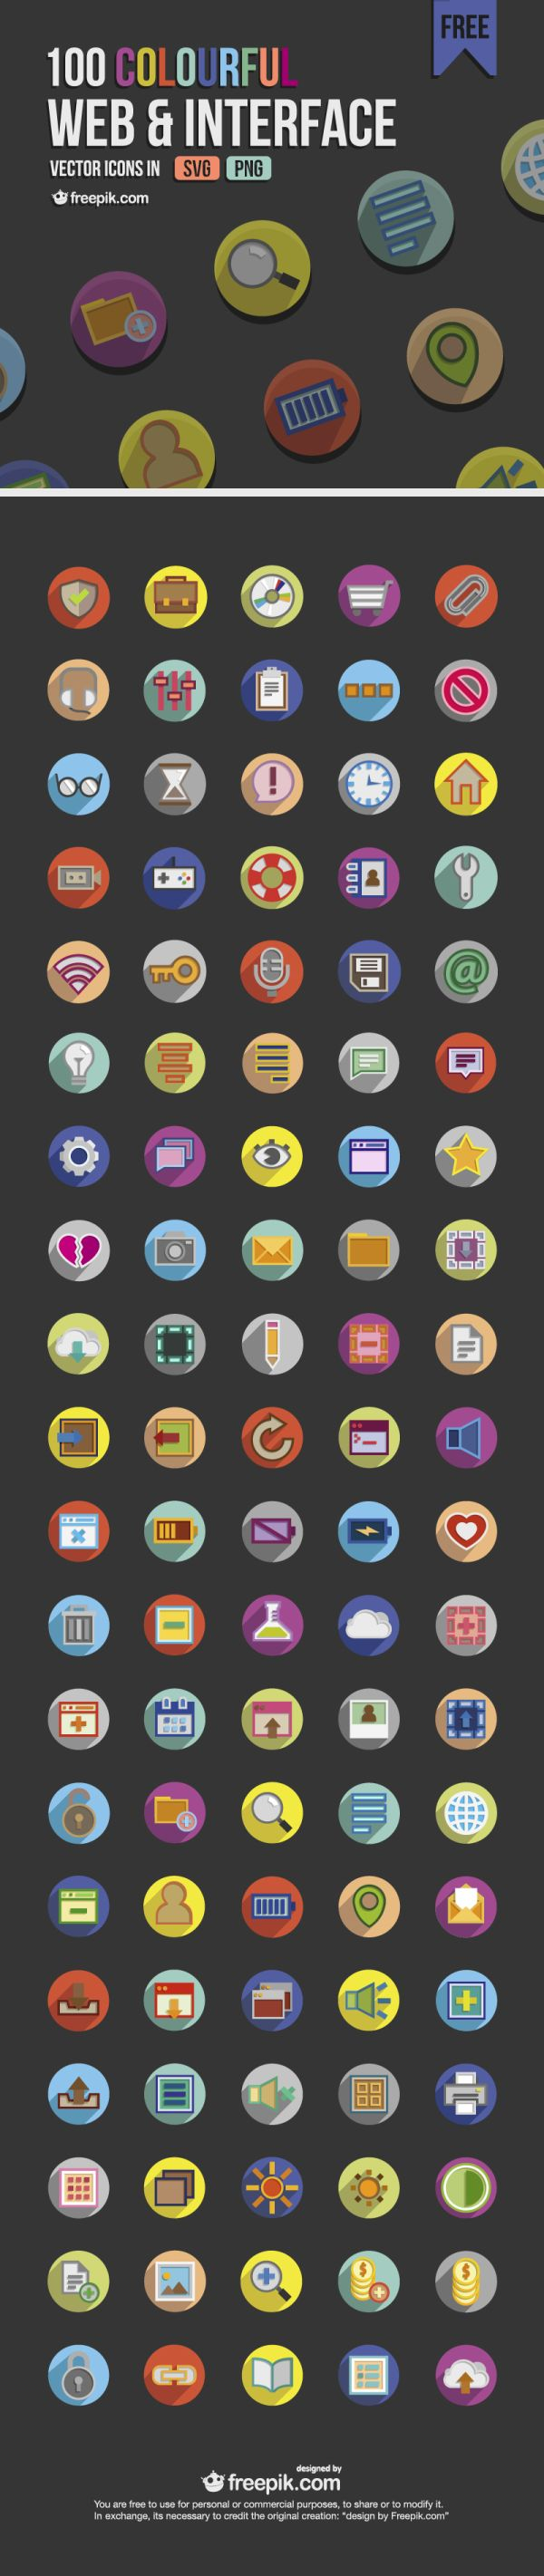 100 FREE COLORFUL WEB AND INTERFACE ICONS